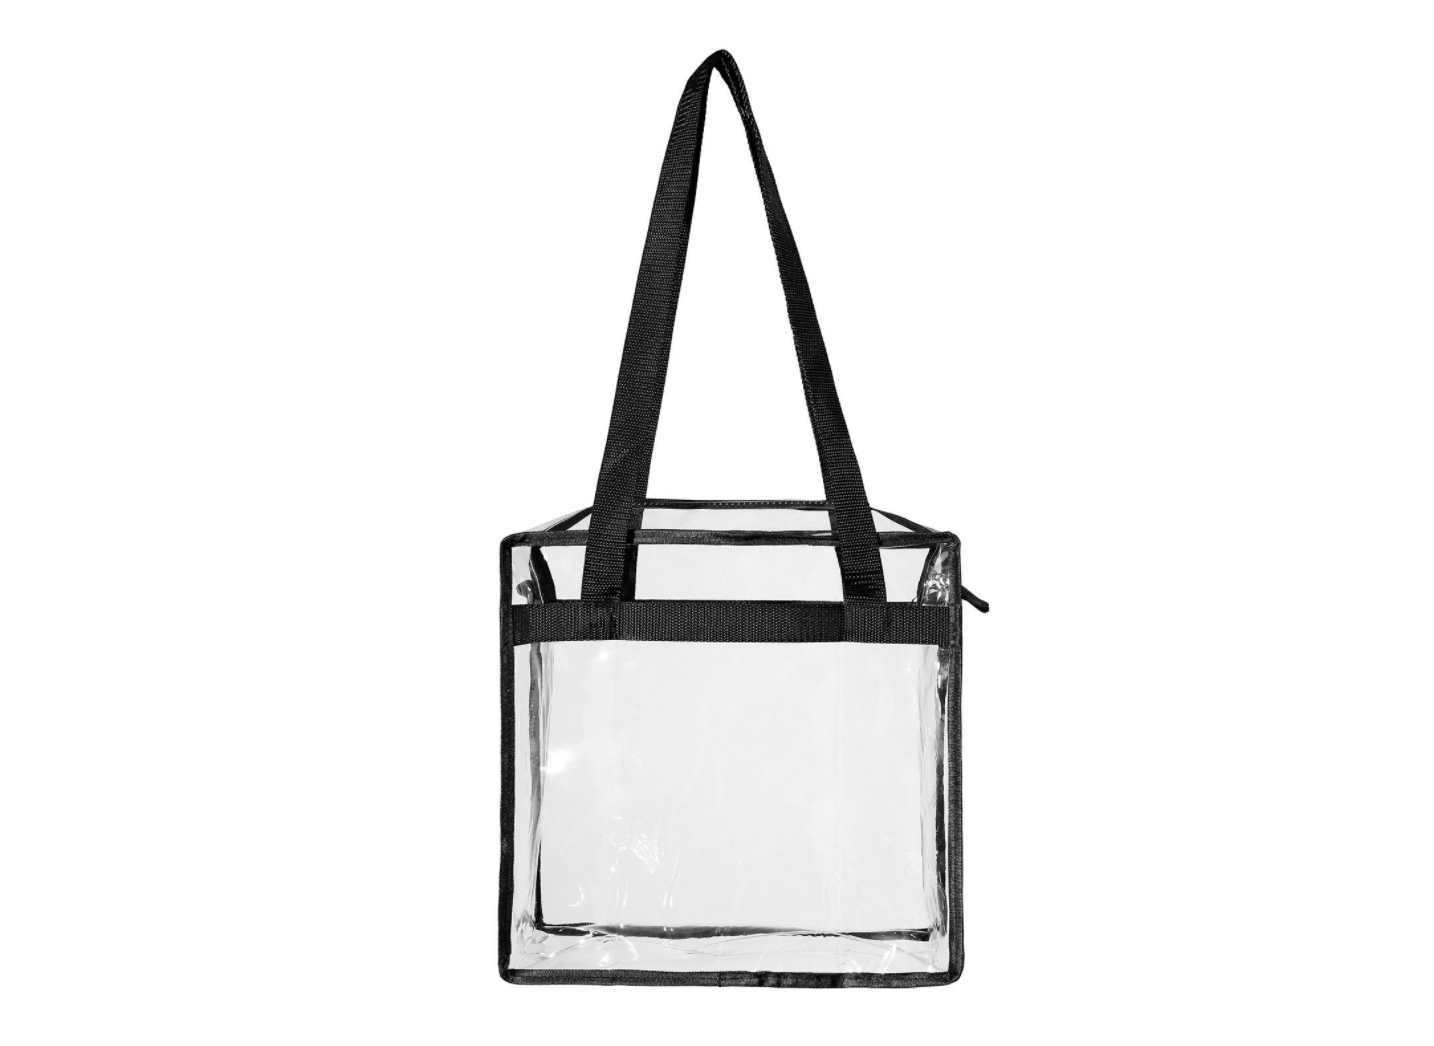 fc24be5d6c07 Clear Stadium Bag - Security Approved - Around FoCo